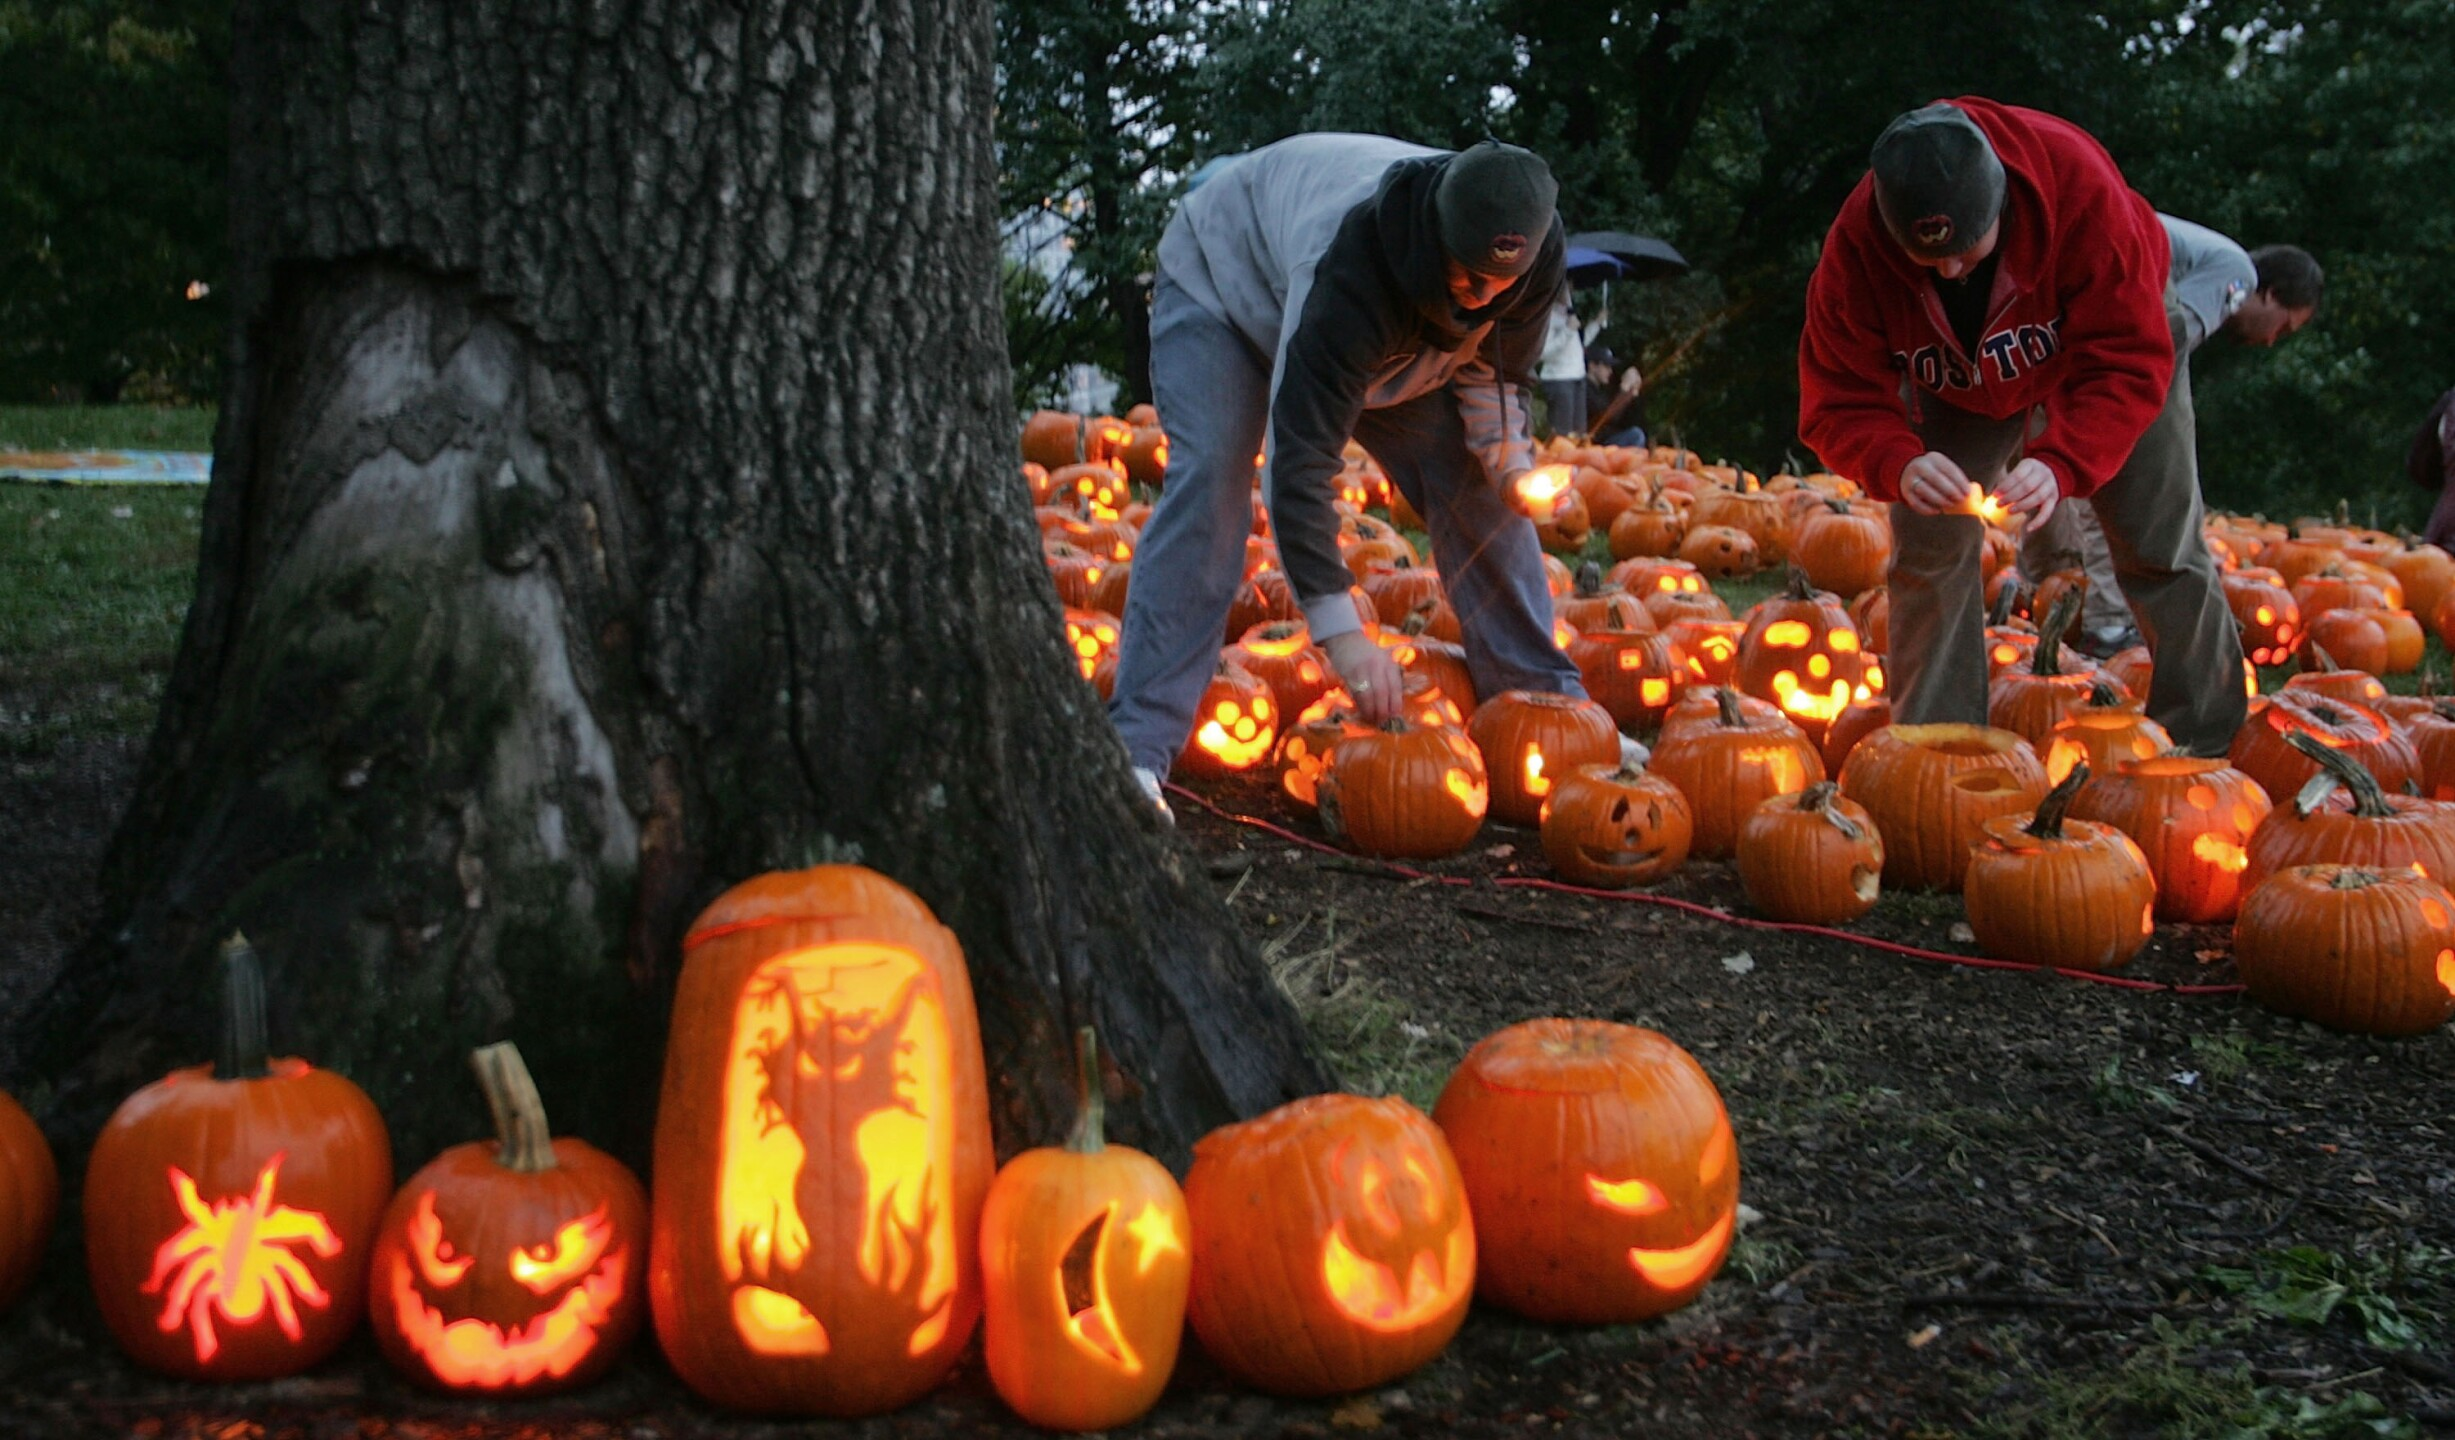 Boston Holds Pumpkin Festival